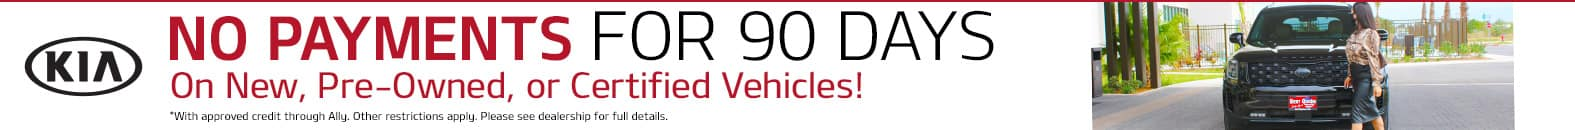 No Payments For 90 Days - Bert Ogden Harlingen Kia in Harlingen, Texas